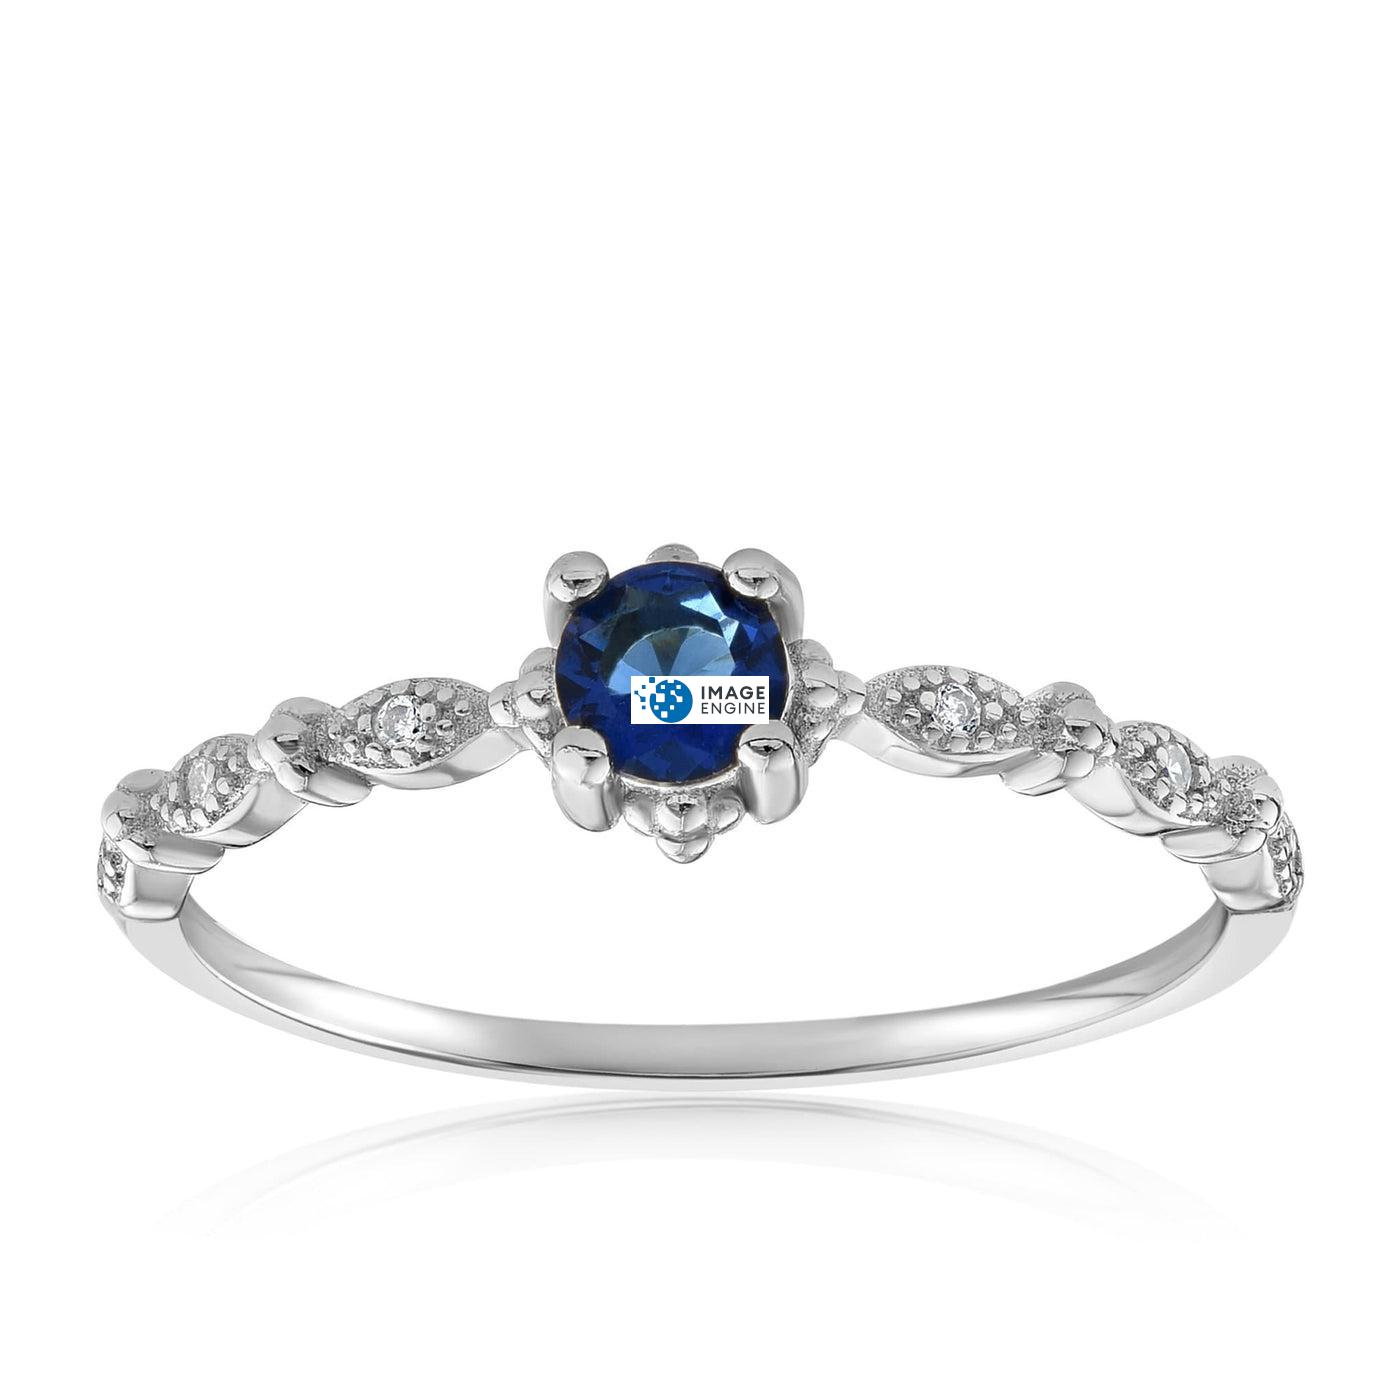 Garen Ring Blue Gemstone - Front View Facing Up - 925 Sterling Silver